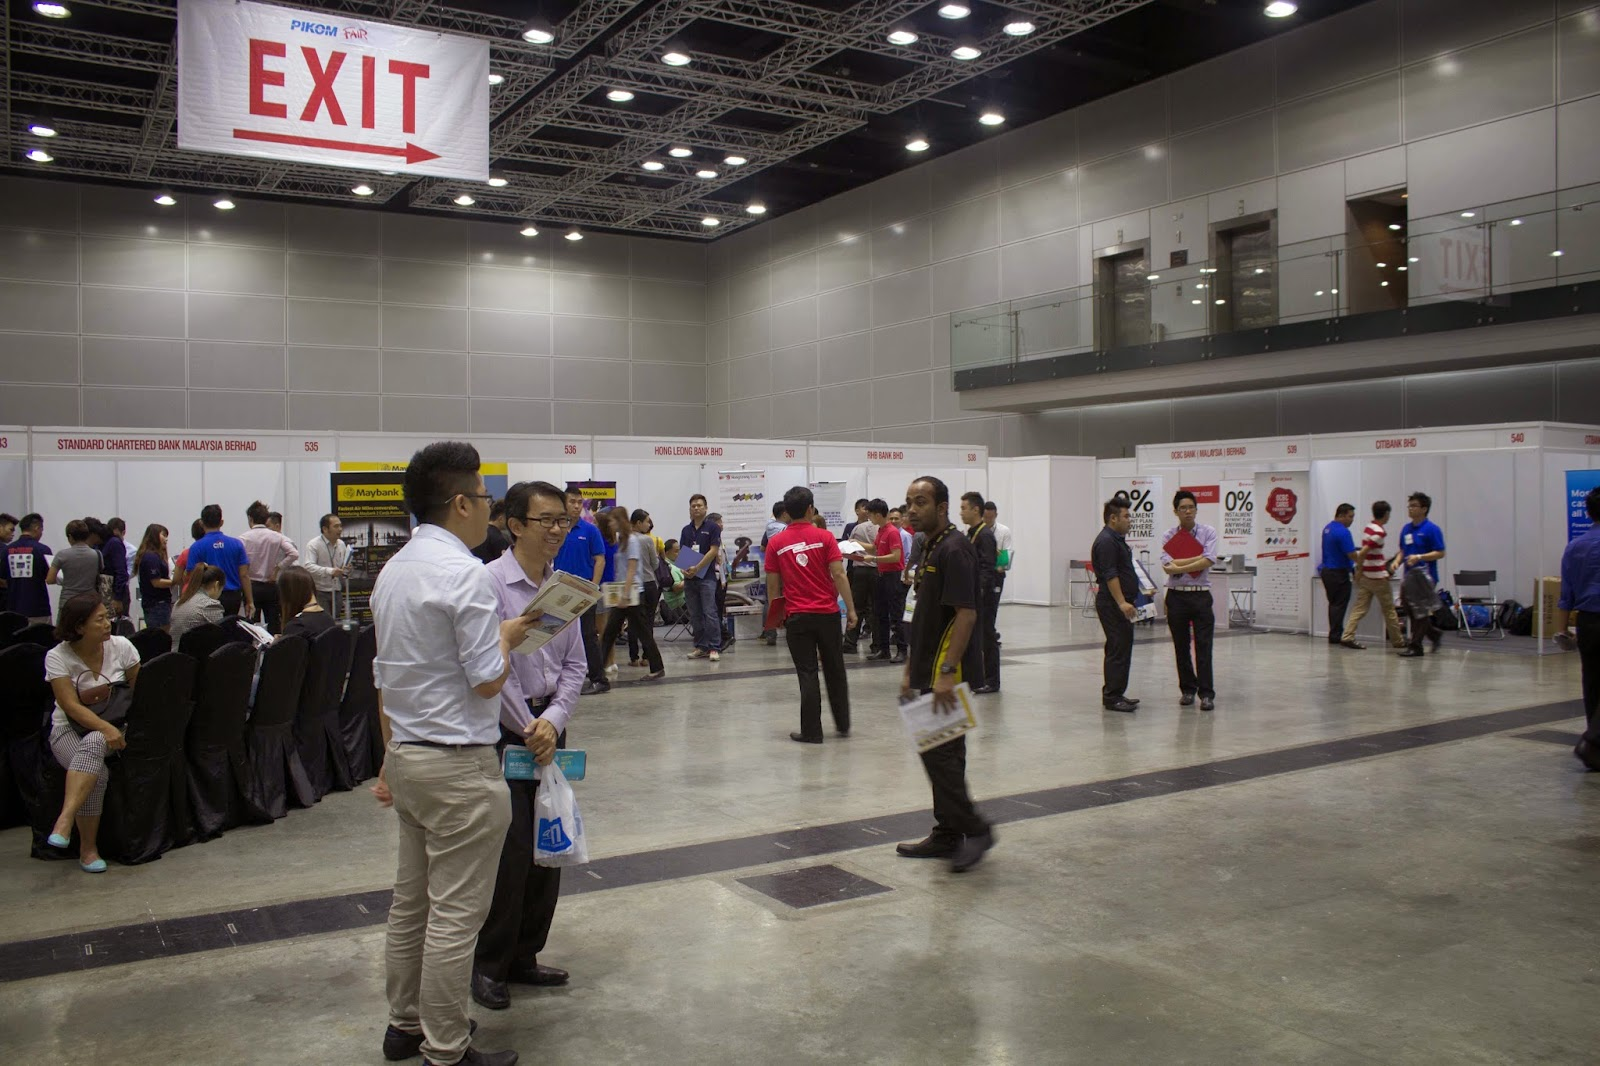 Coverage of PIKOM PC Fair 2014 @ Kuala Lumpur Convention Center 408